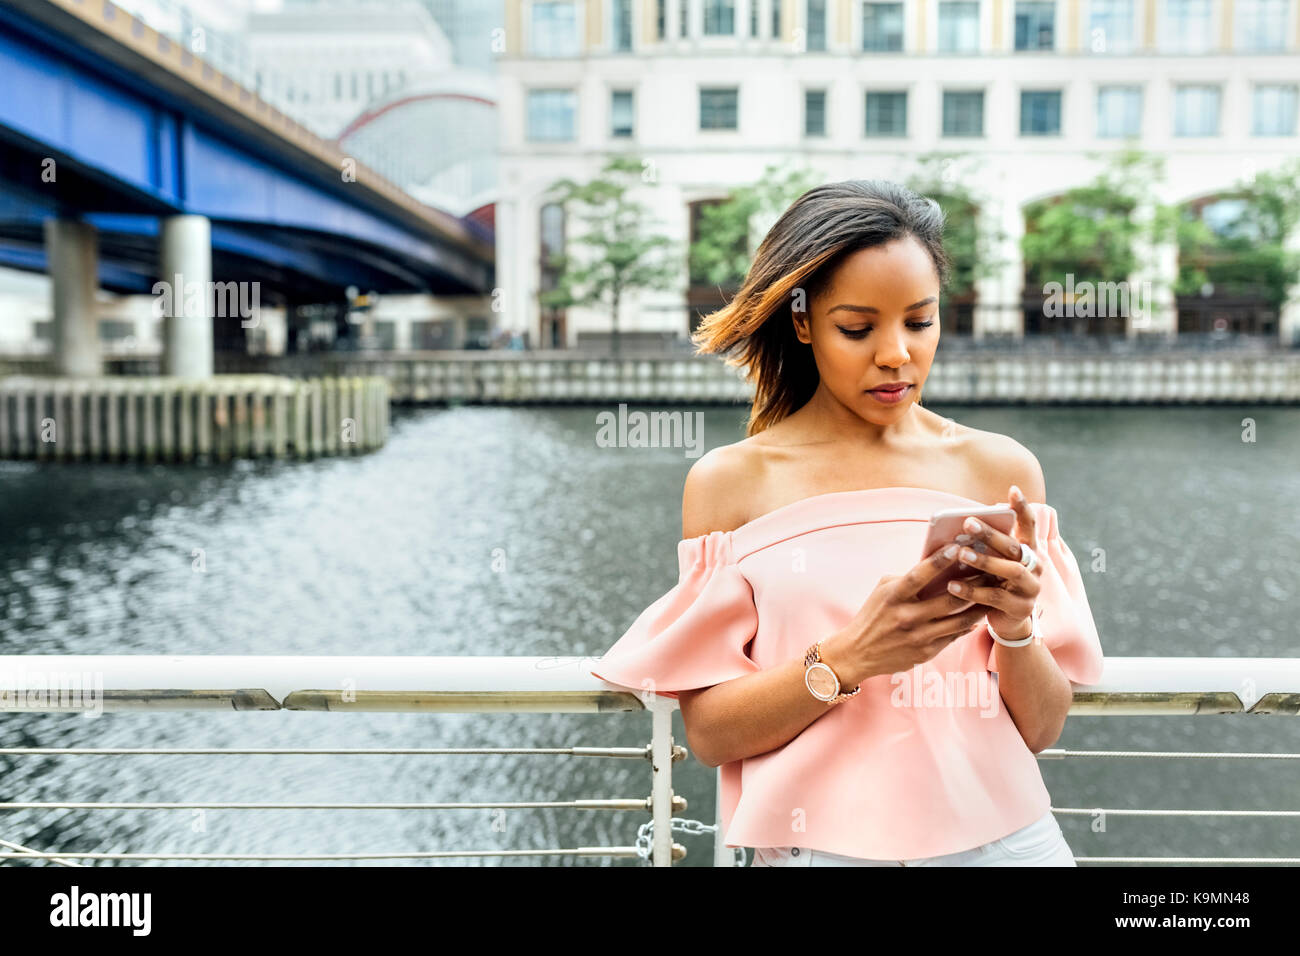 Woman sending messages with her smartphone in the city - Stock Image